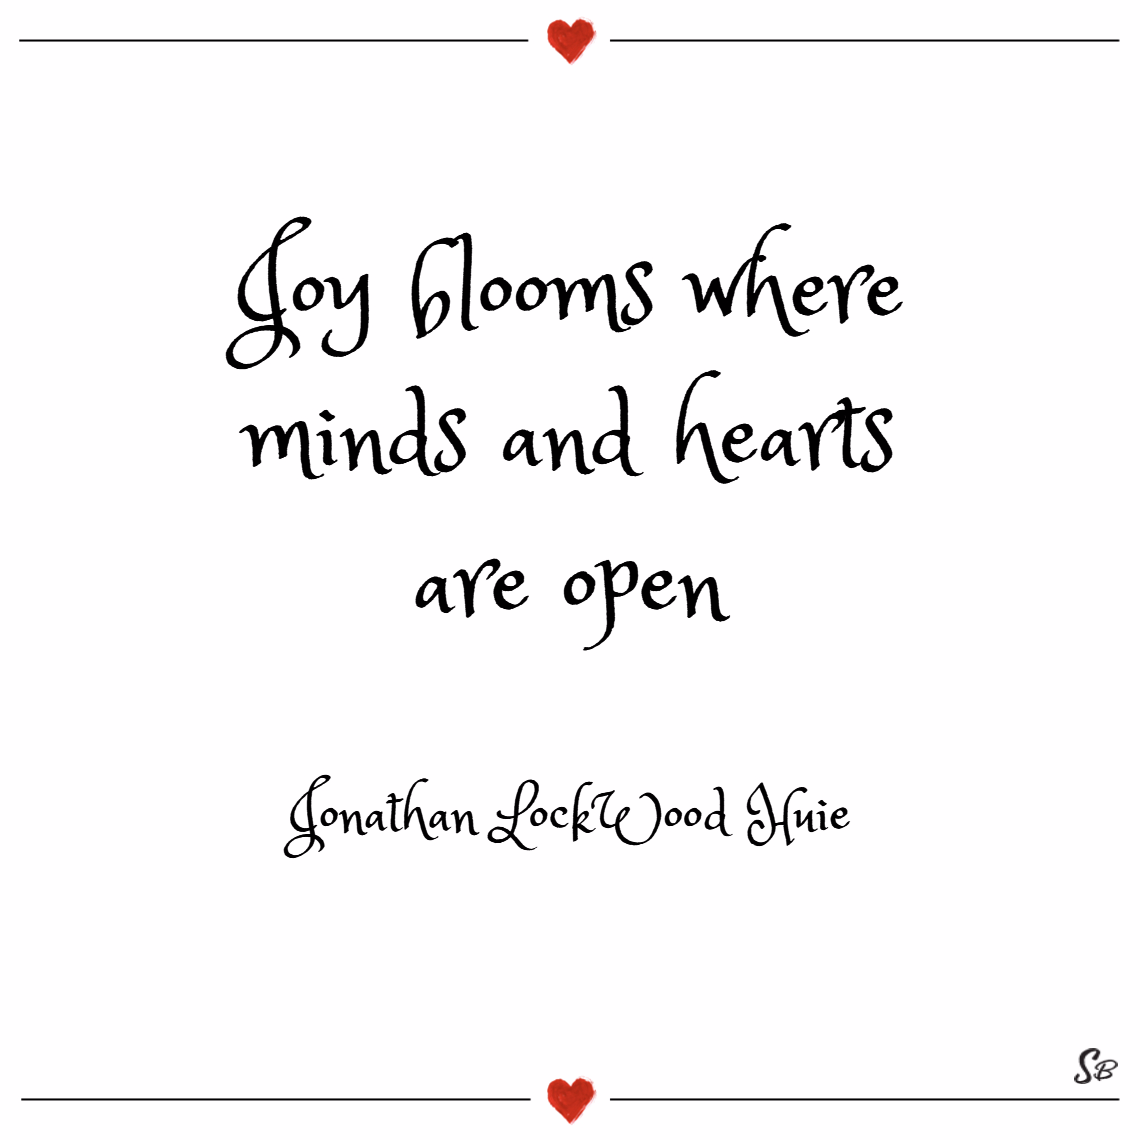 Joy blooms where minds and hearts are open. – jonathan lockwood huie